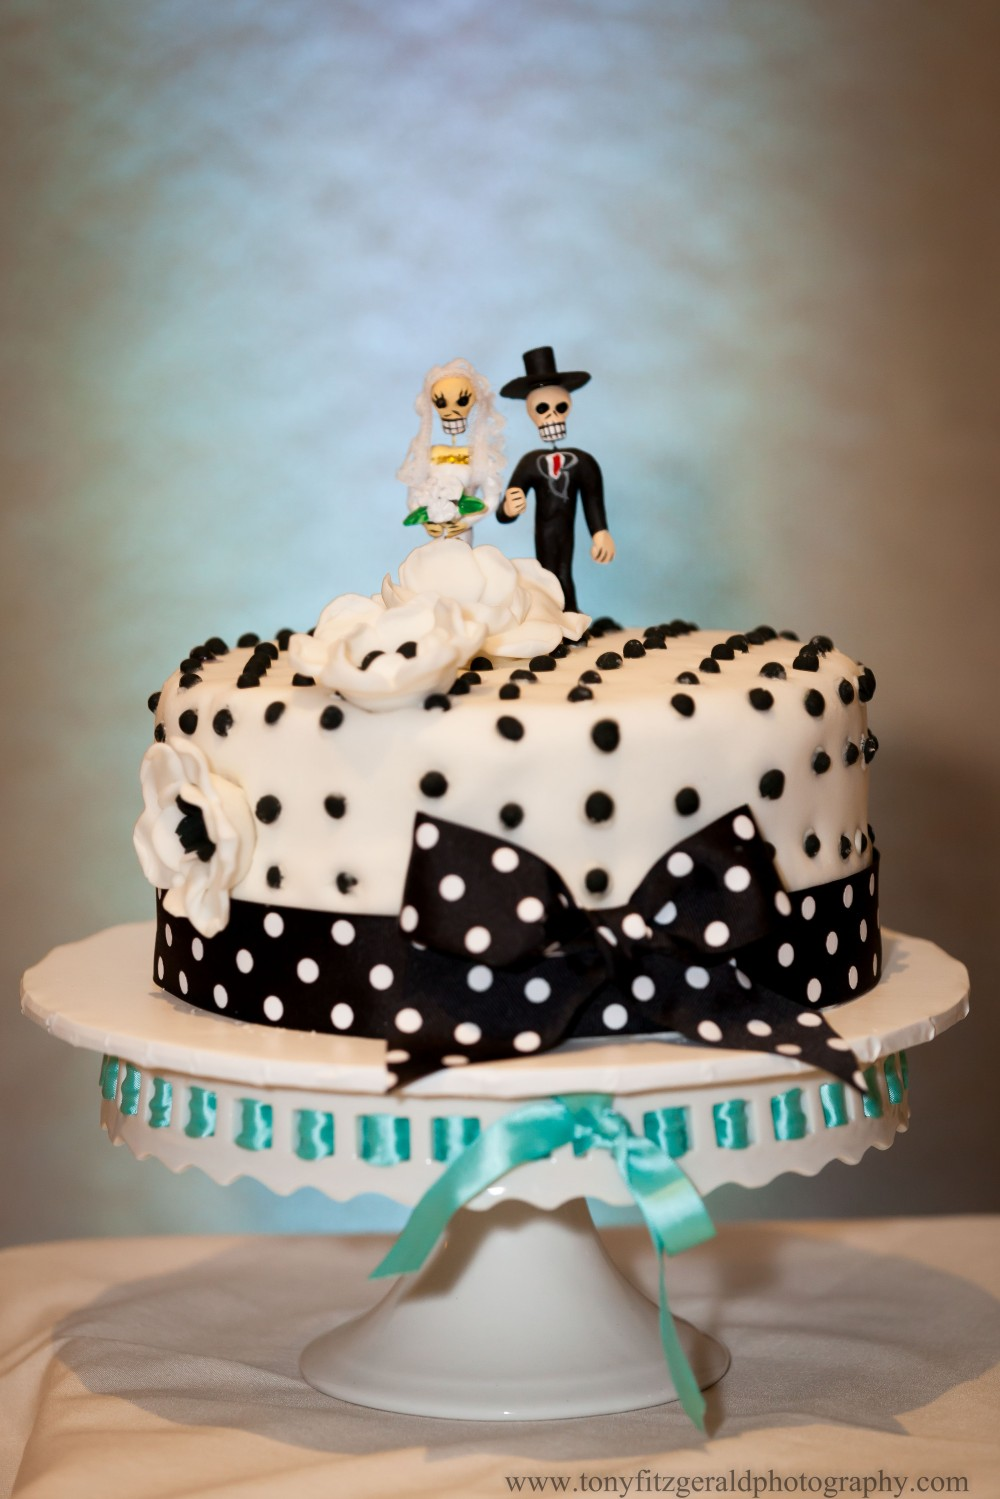 black and white polka dot wedding cake with day of the dead figurines as bride and groom